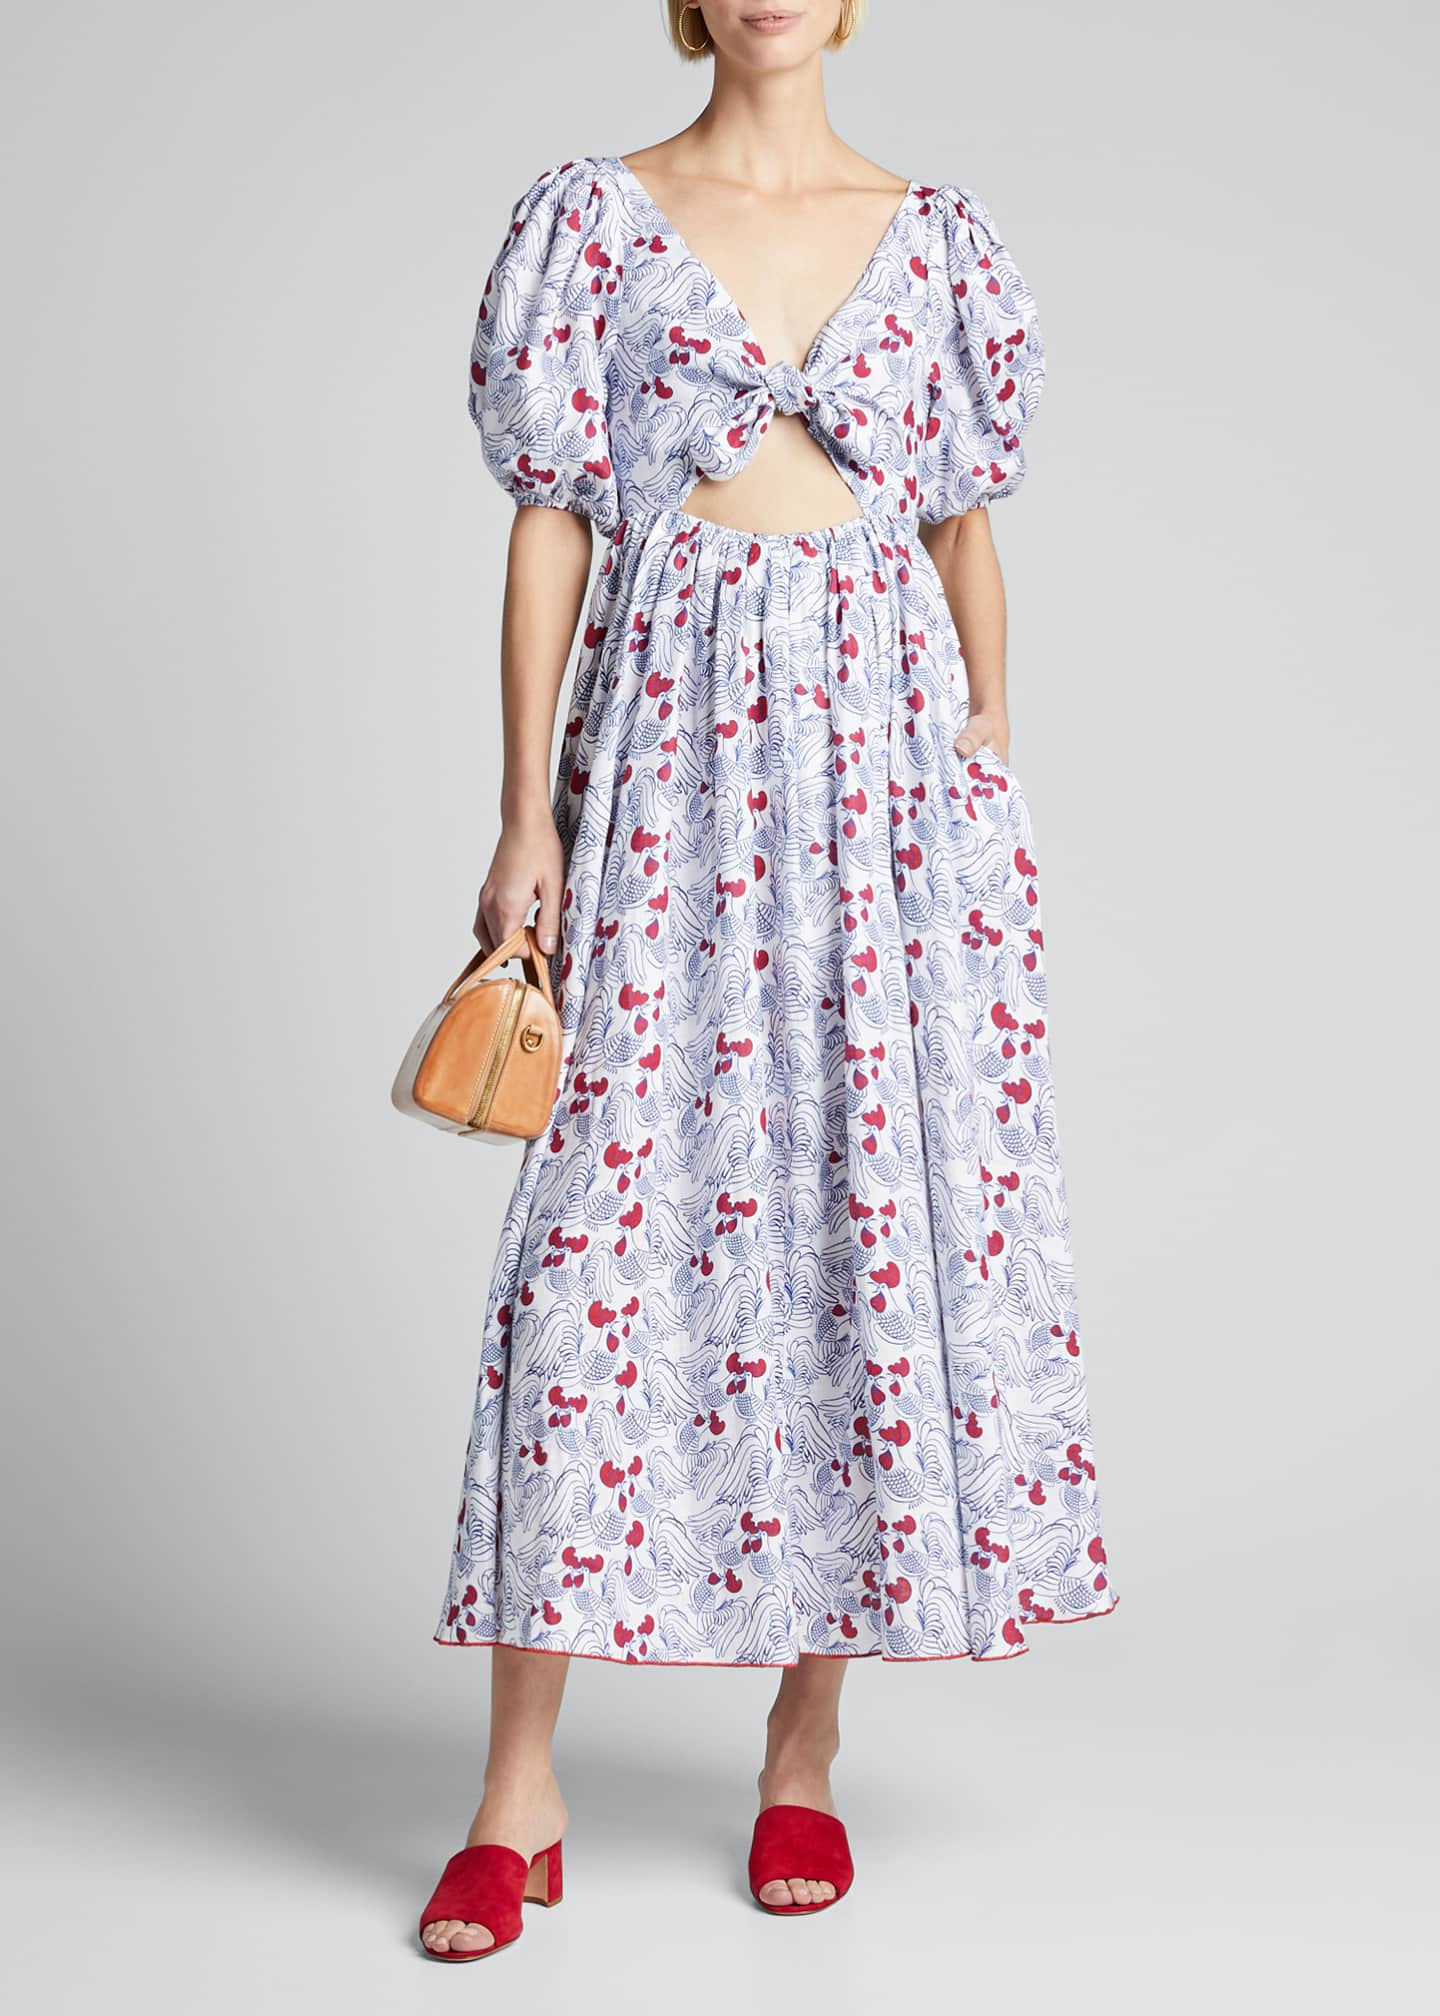 Gul Hurgel Printed Bow Dress with Cutout Front